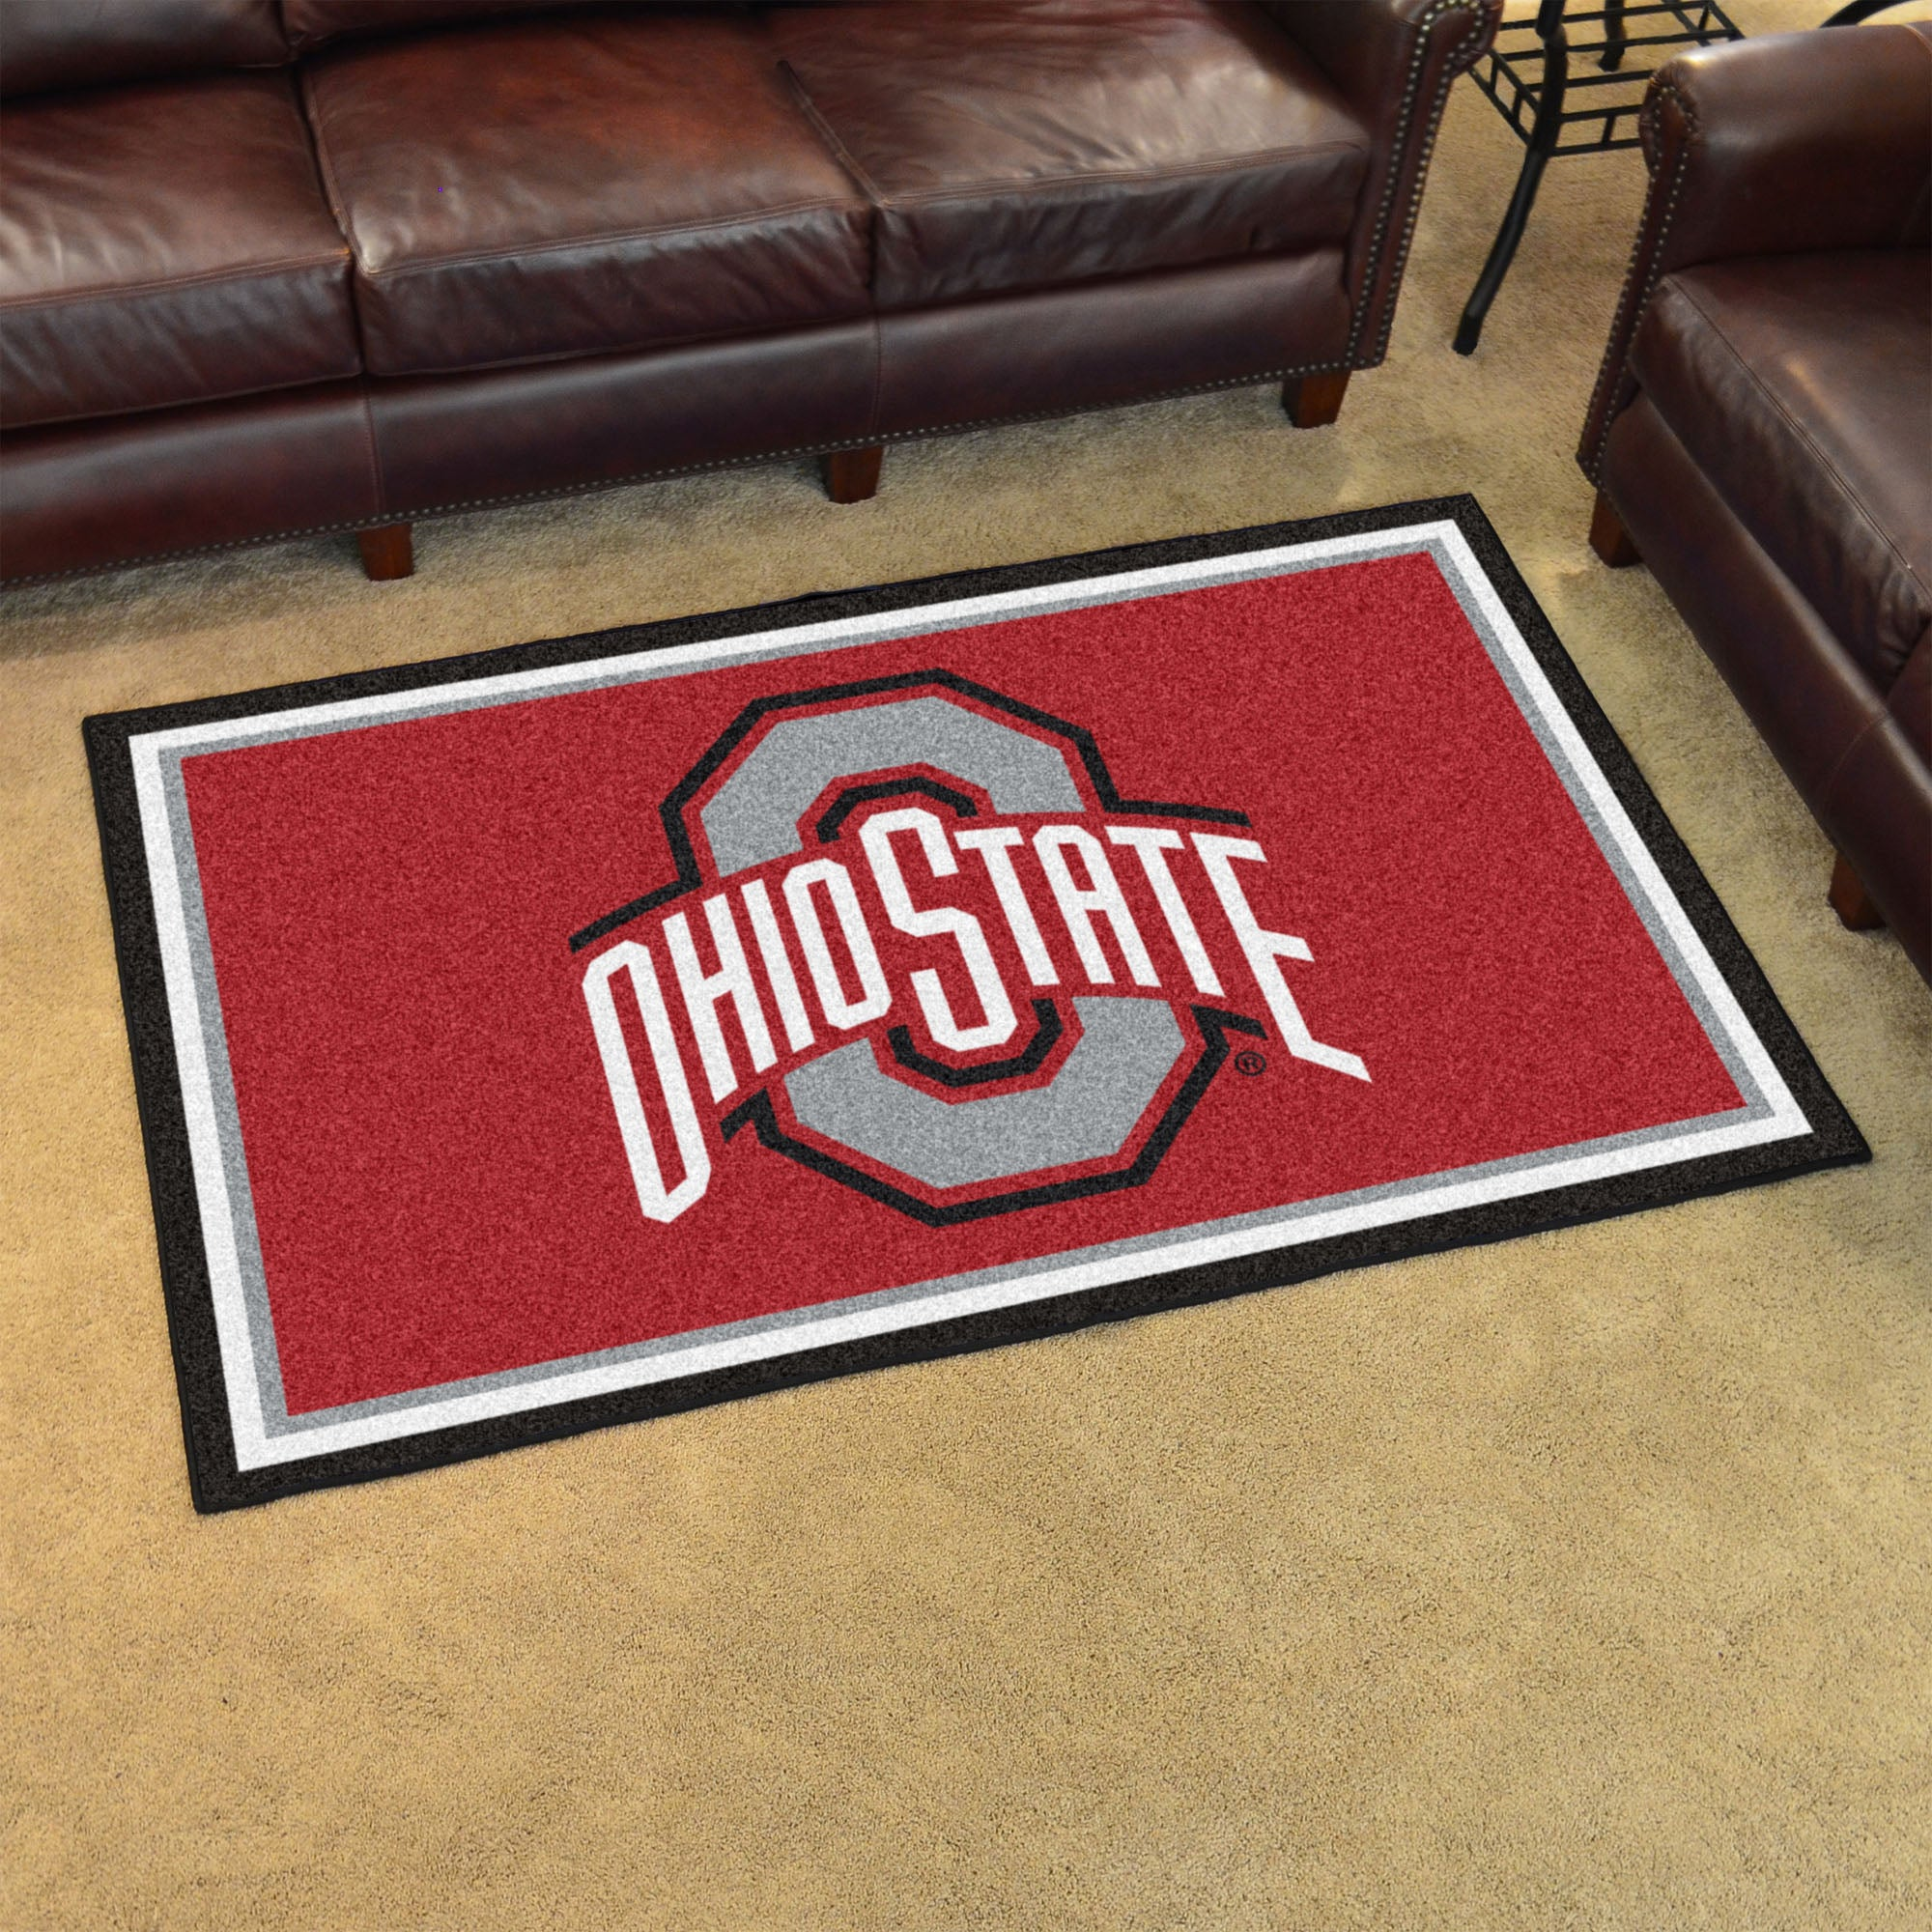 Ohio State University Plush Rug  College Area Rug - Fan Rugs